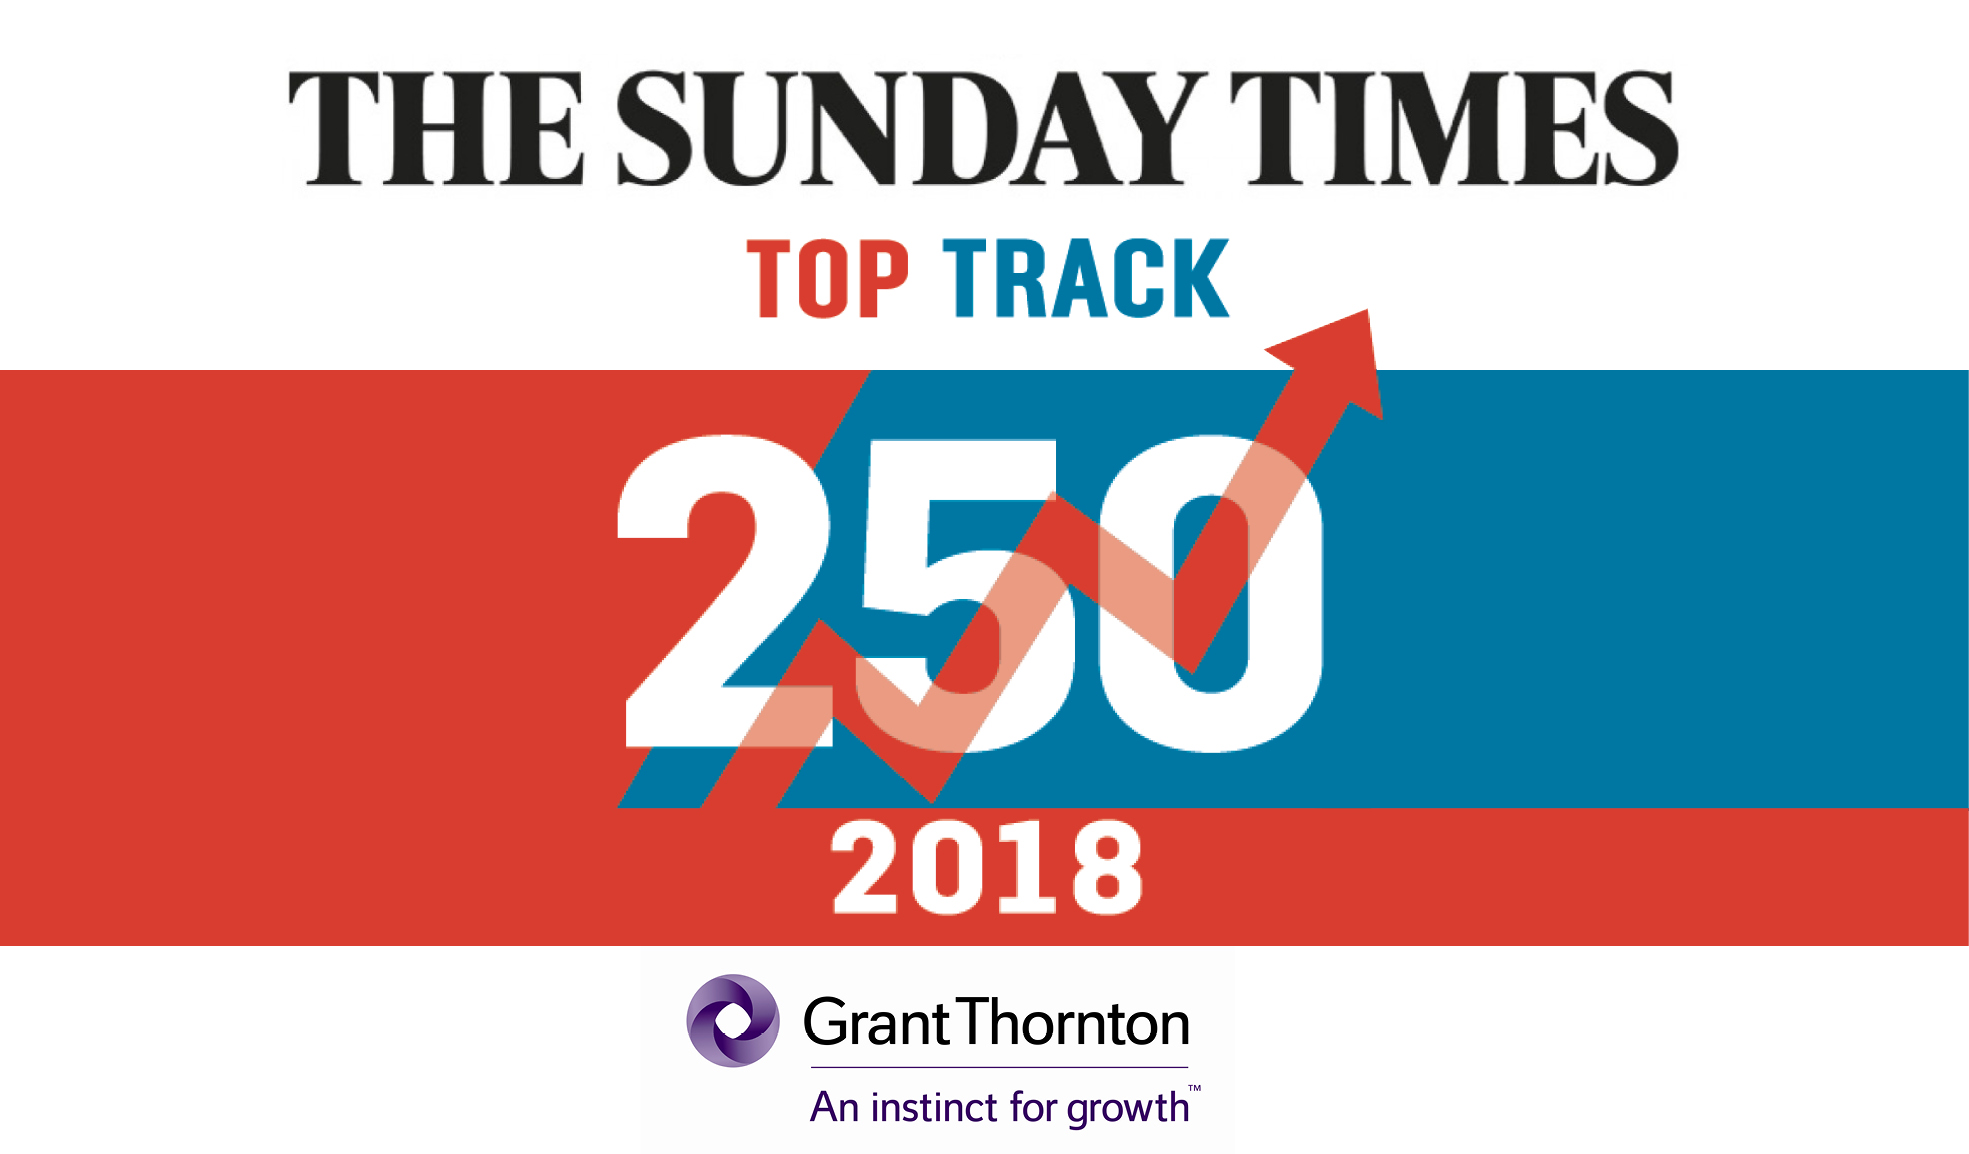 Sunday Times Grant Thornton Top Track 250 2 award image